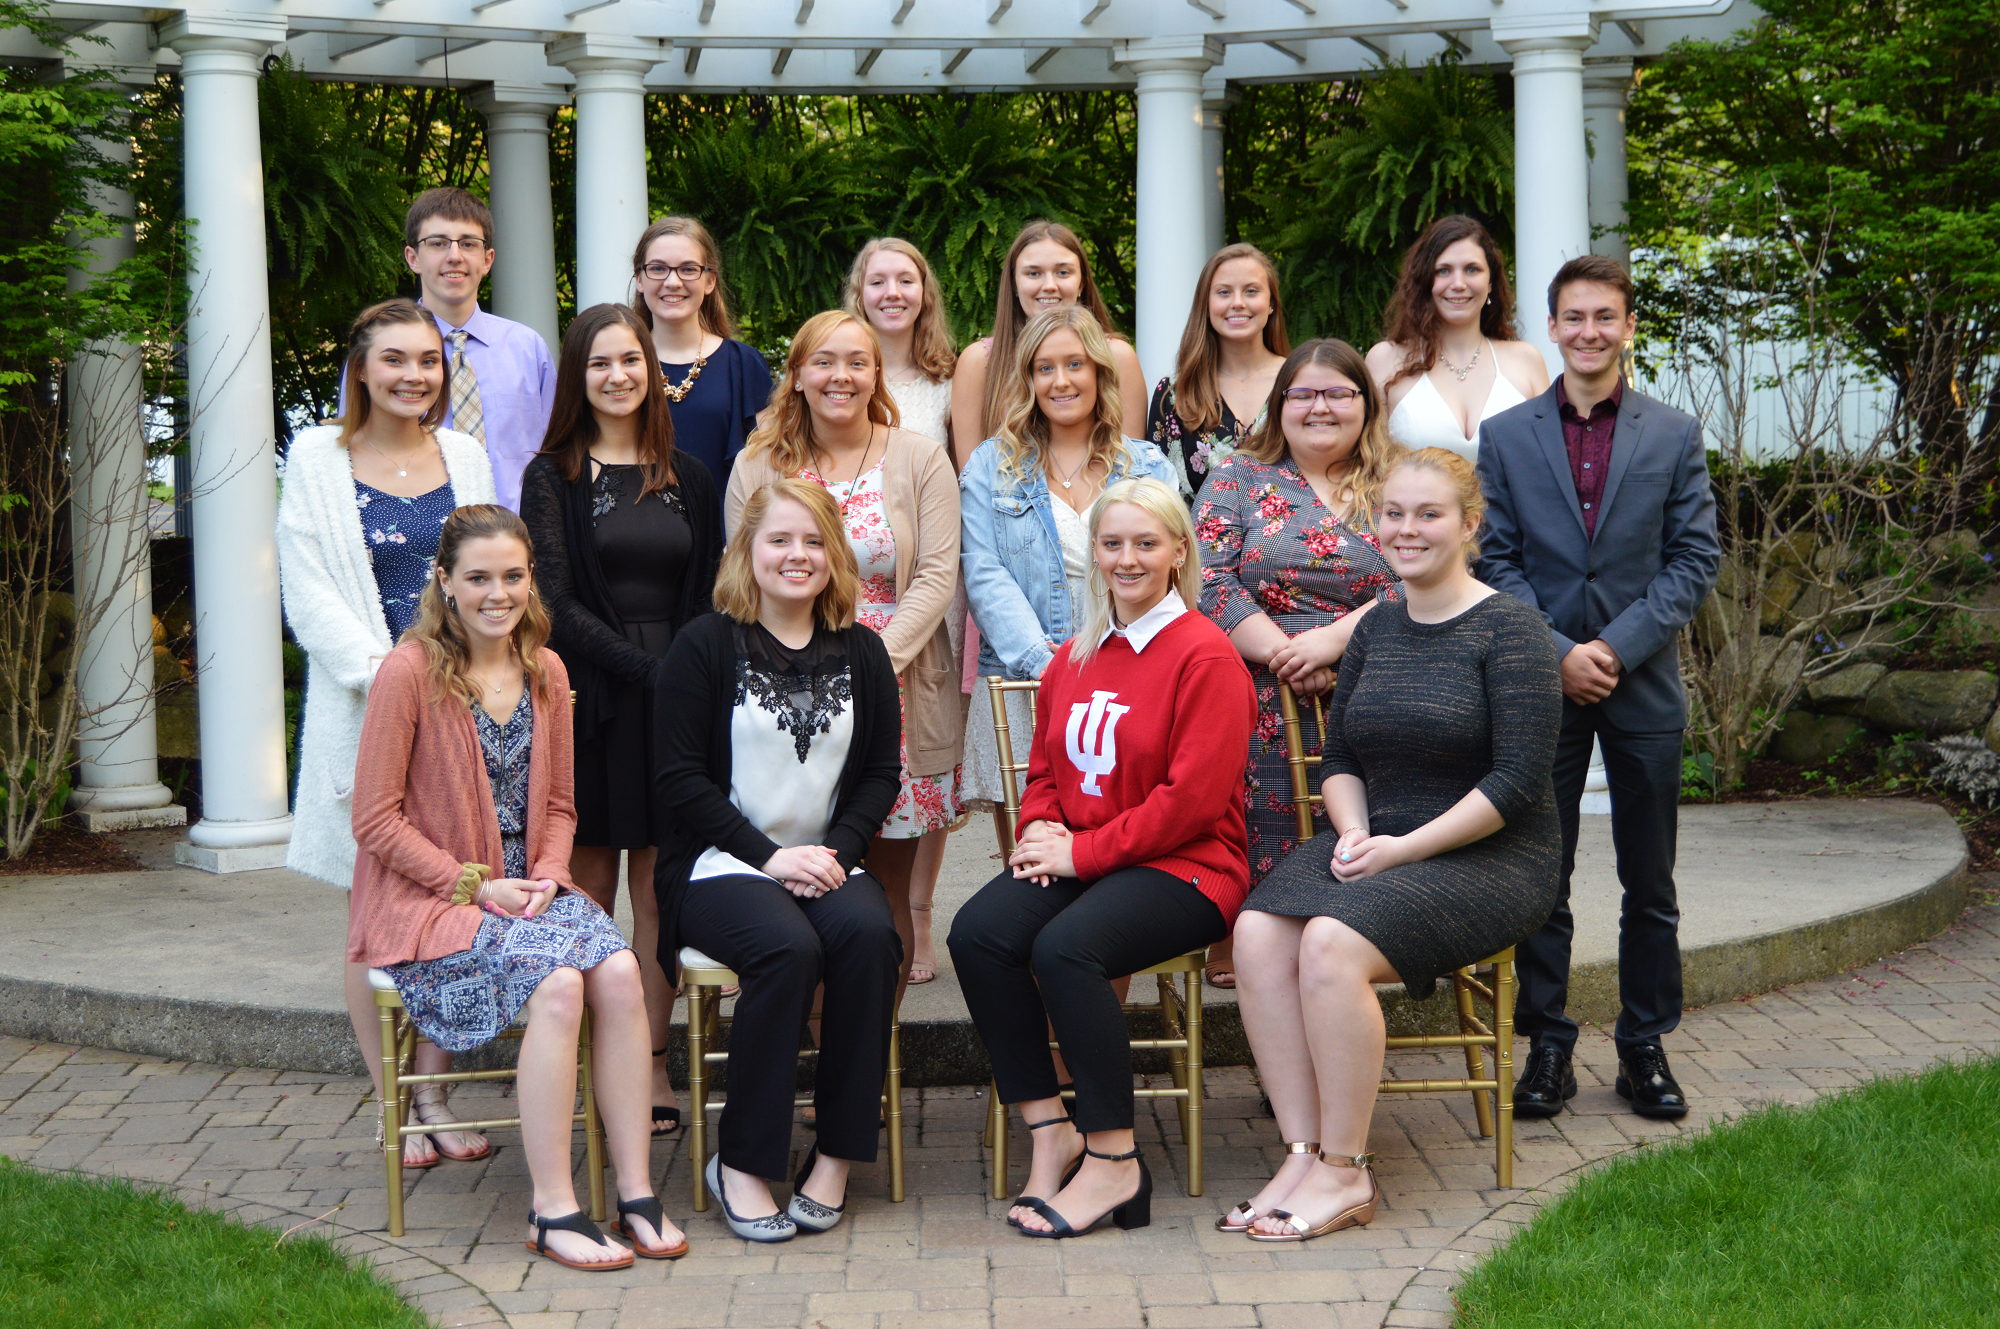 Over 25 Porter County High School Seniors were presented with scholarships from the Porter County Community Foundation at its annual Scholarship Banquet on May 9th.